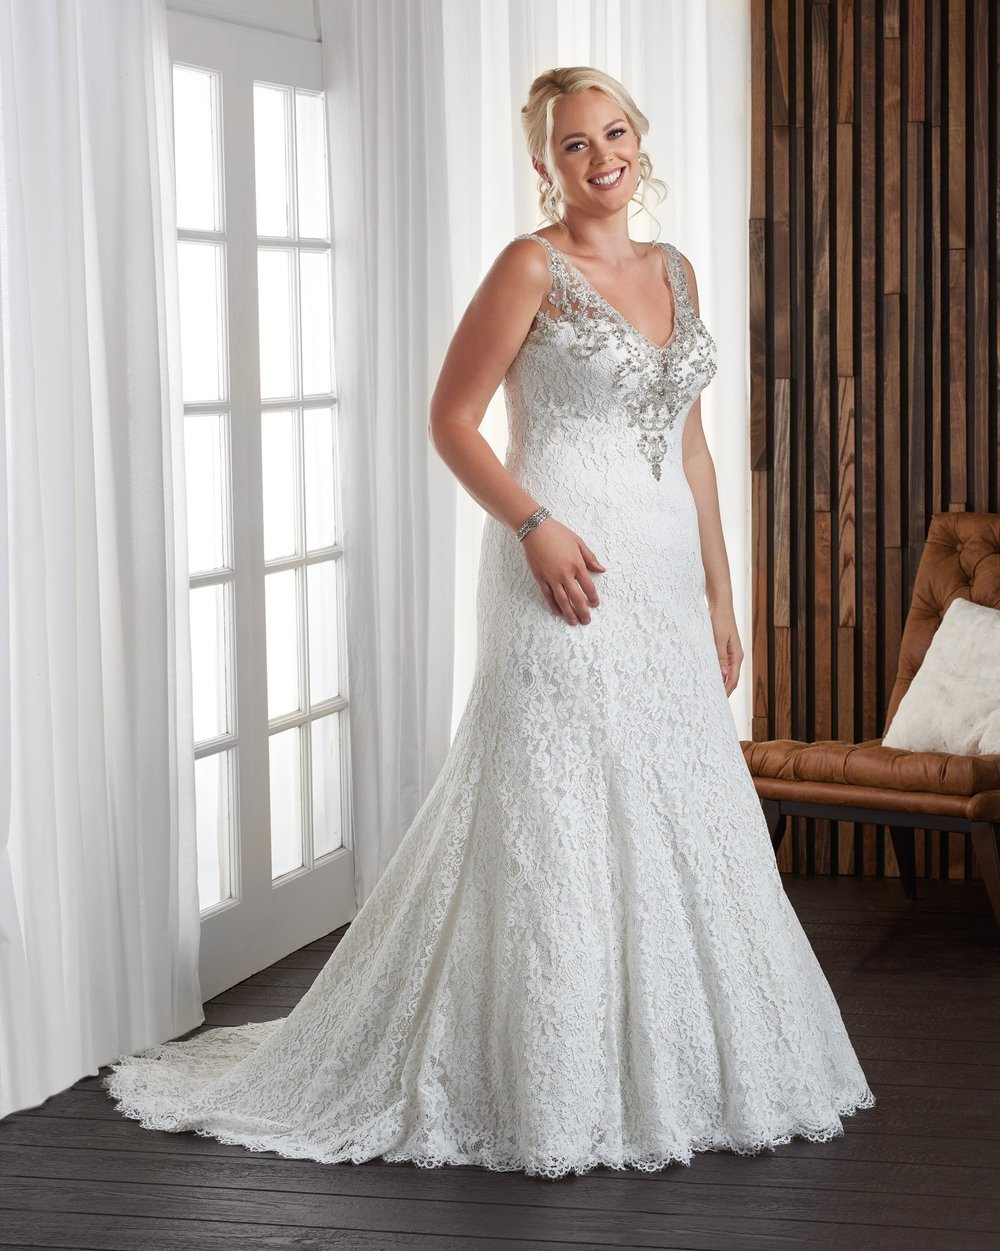 BonnyBridal-BridesbyYoung-PlusSizeWeddingDress-1707.jpg